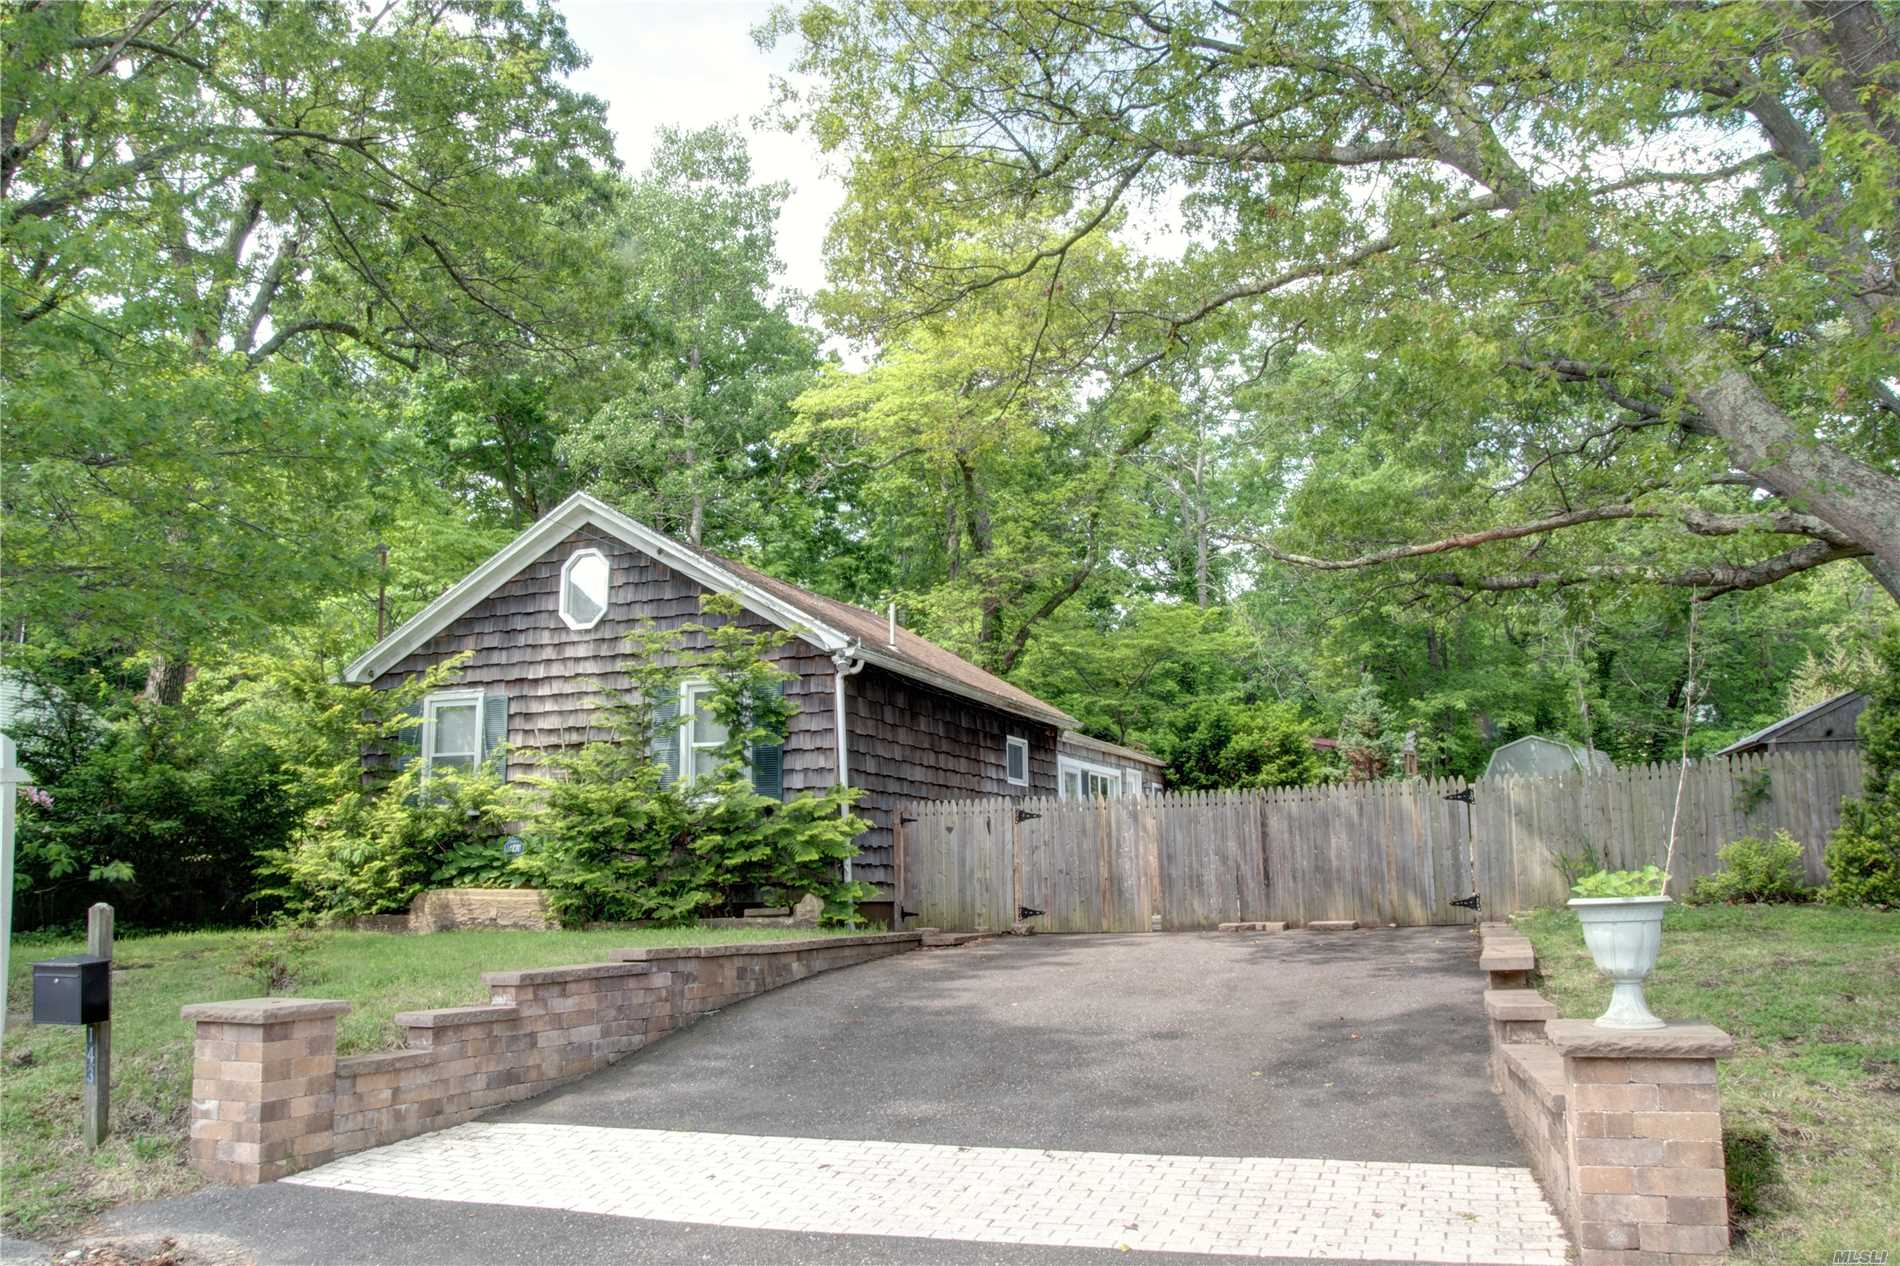 Beautiful Property .32 acres goes from Friendship Dr to Twilight. Fenced in yard with rear deck with waterviews, This Cute and Cozy Ranch is just 500' to North Shore Beaches where you can enjoy fishing, kayaking or just a lazy day at the beach, Home features newly redone hardwood floors, Eik w/SS appliances, Most rooms freshly painted. This home is a perfect Starter or retirement home or an amazing weekend get away with the beach at the end of the street. Don't miss this opportunity !!